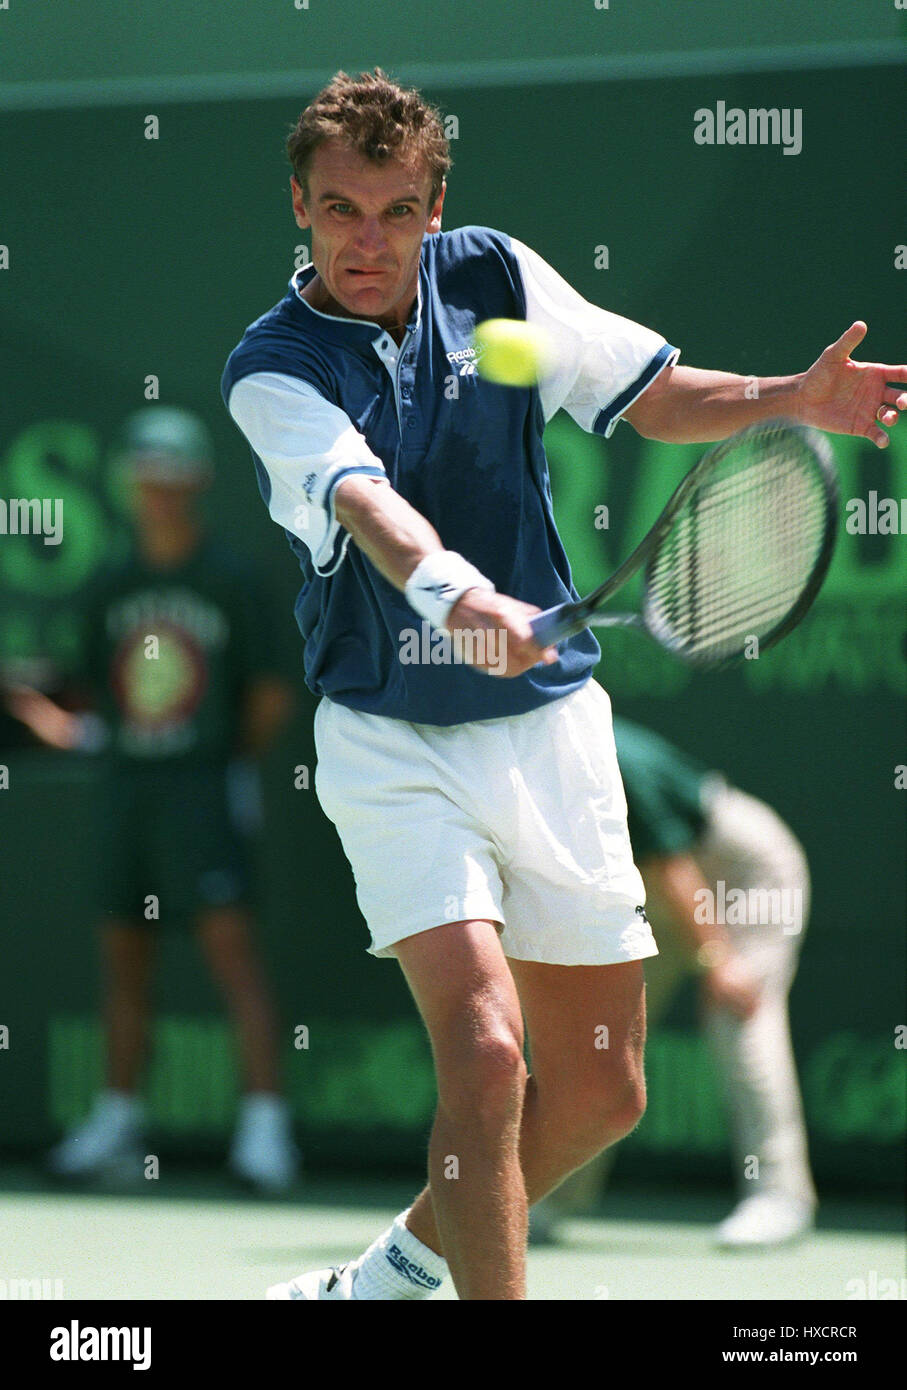 MATS WILANDER SWEDEN 04 April 1996 Stock Royalty Free Image